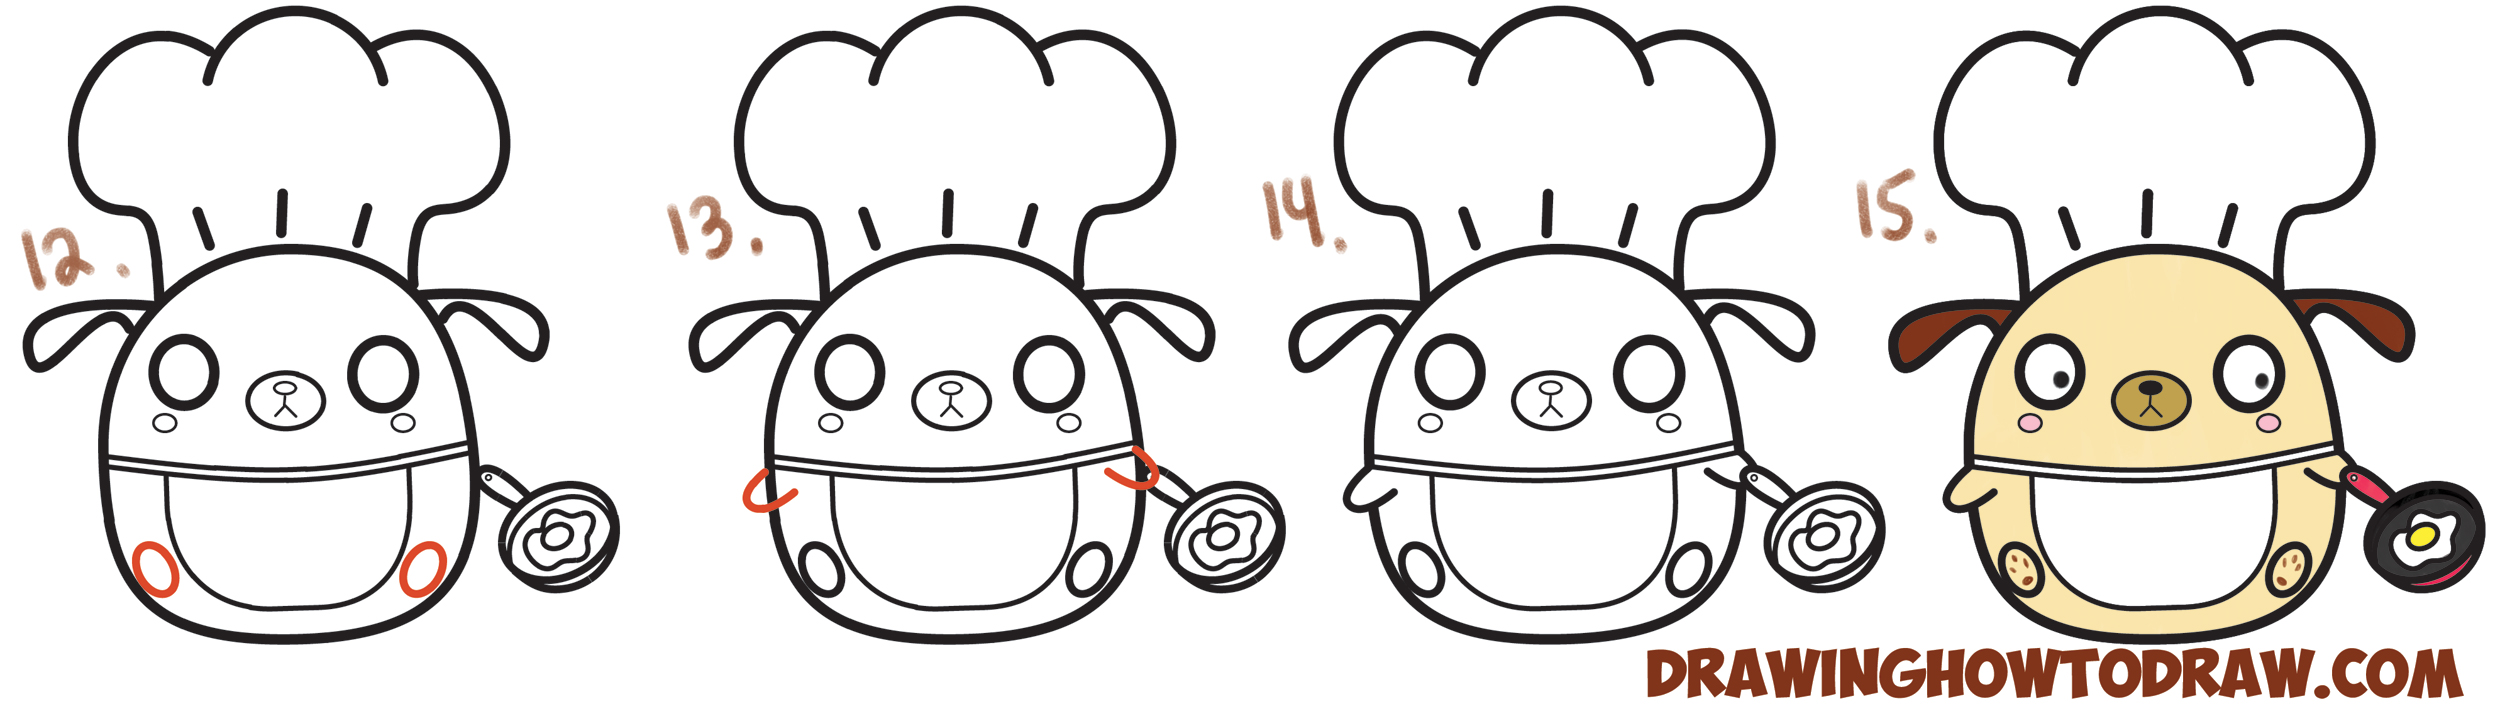 Learn How to Draw Cute Kawaii Chibi Dog Chef Cooking from Question Mark Shapes with Simple Steps Drawing Lesson for Children & Beginners